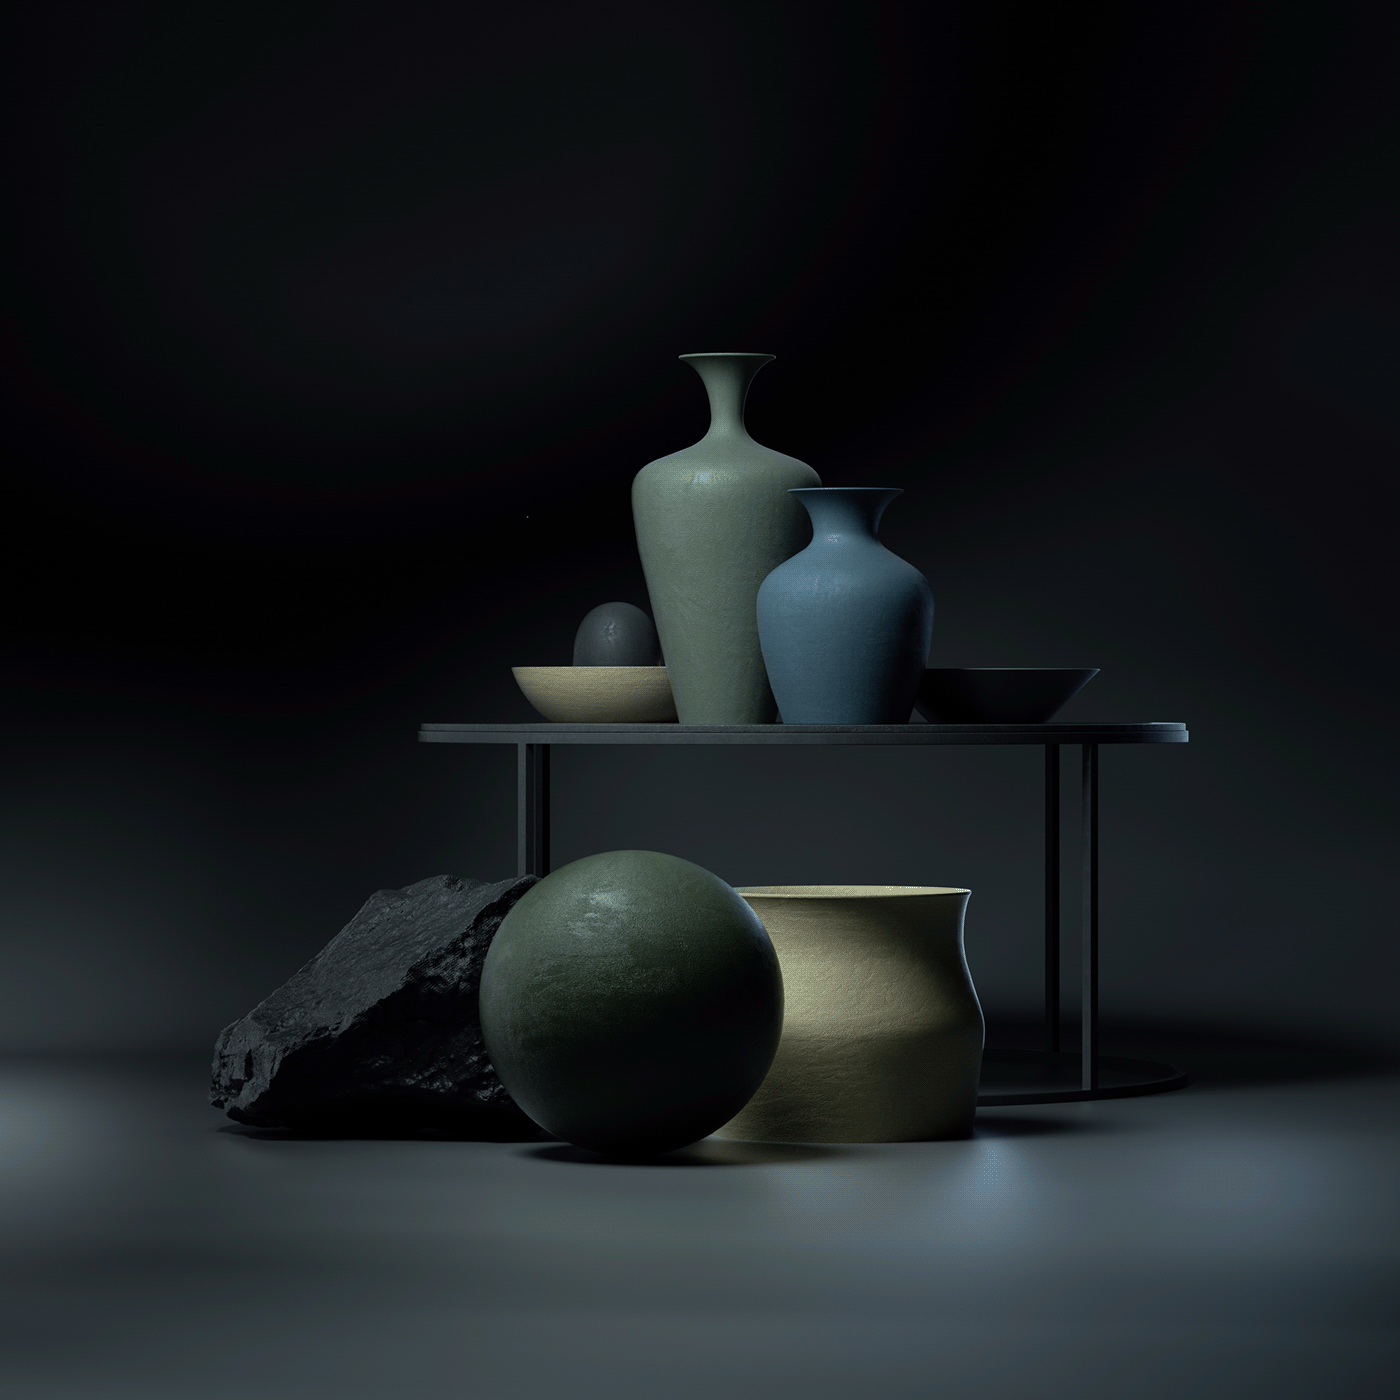 Image may contain: indoor, vase and still life photography